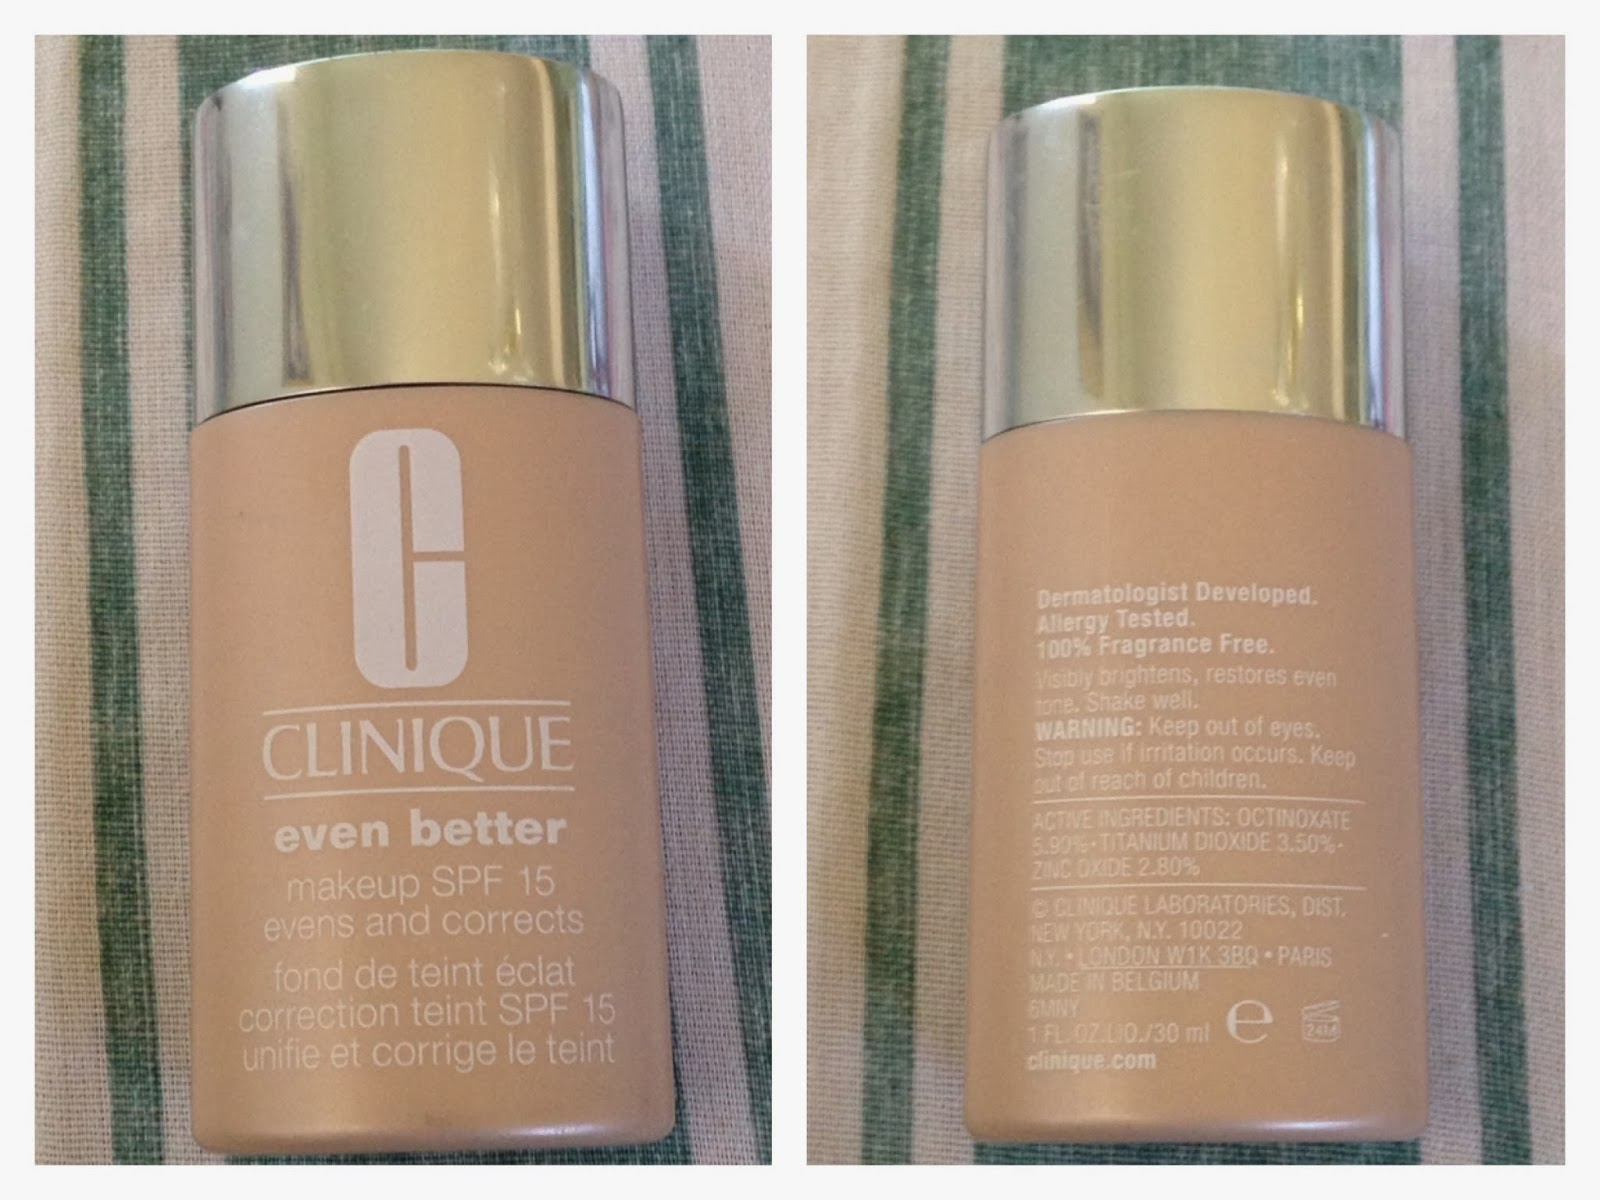 Clinique even better makeup foundation review swatches before - Description Wear Even Better Makeup Spf 15 And Something Amazing Happens Without Any Makeup See Improved Clarity A More Even Skin Tone